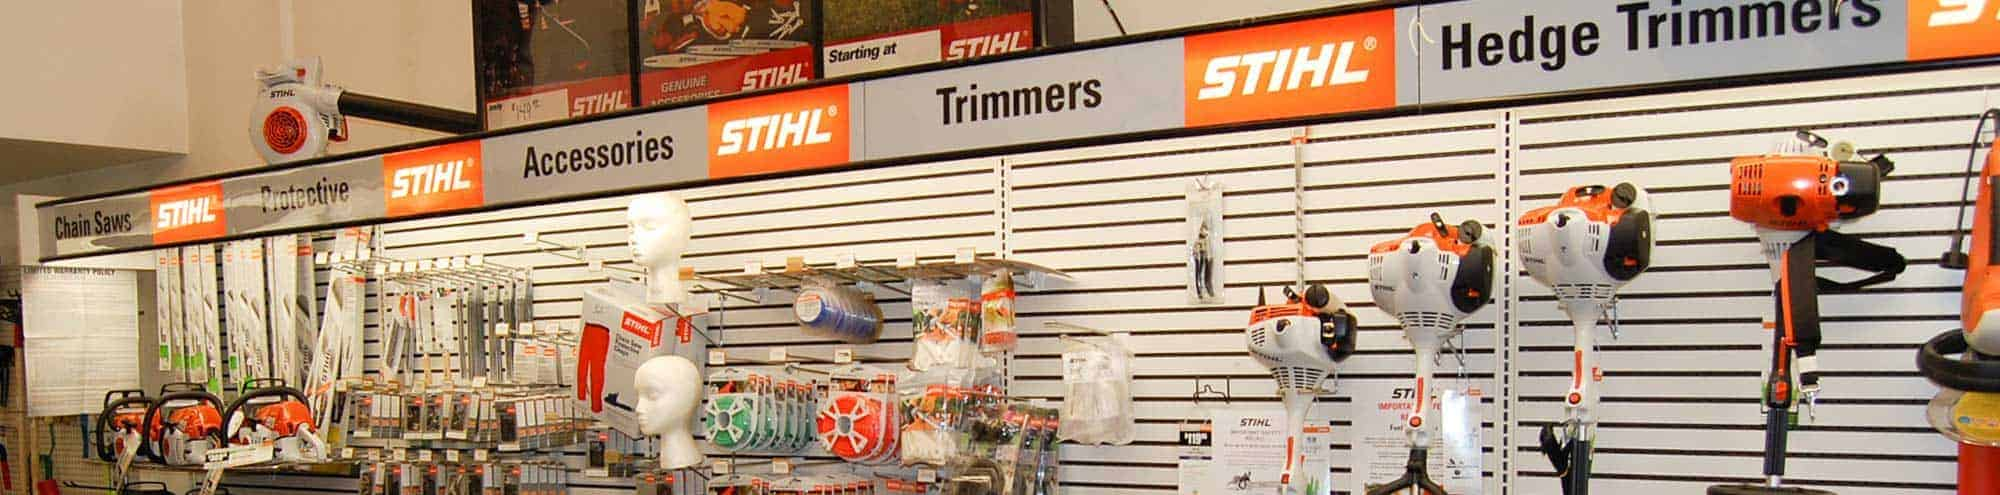 Stihl equipment at Shively Hardware